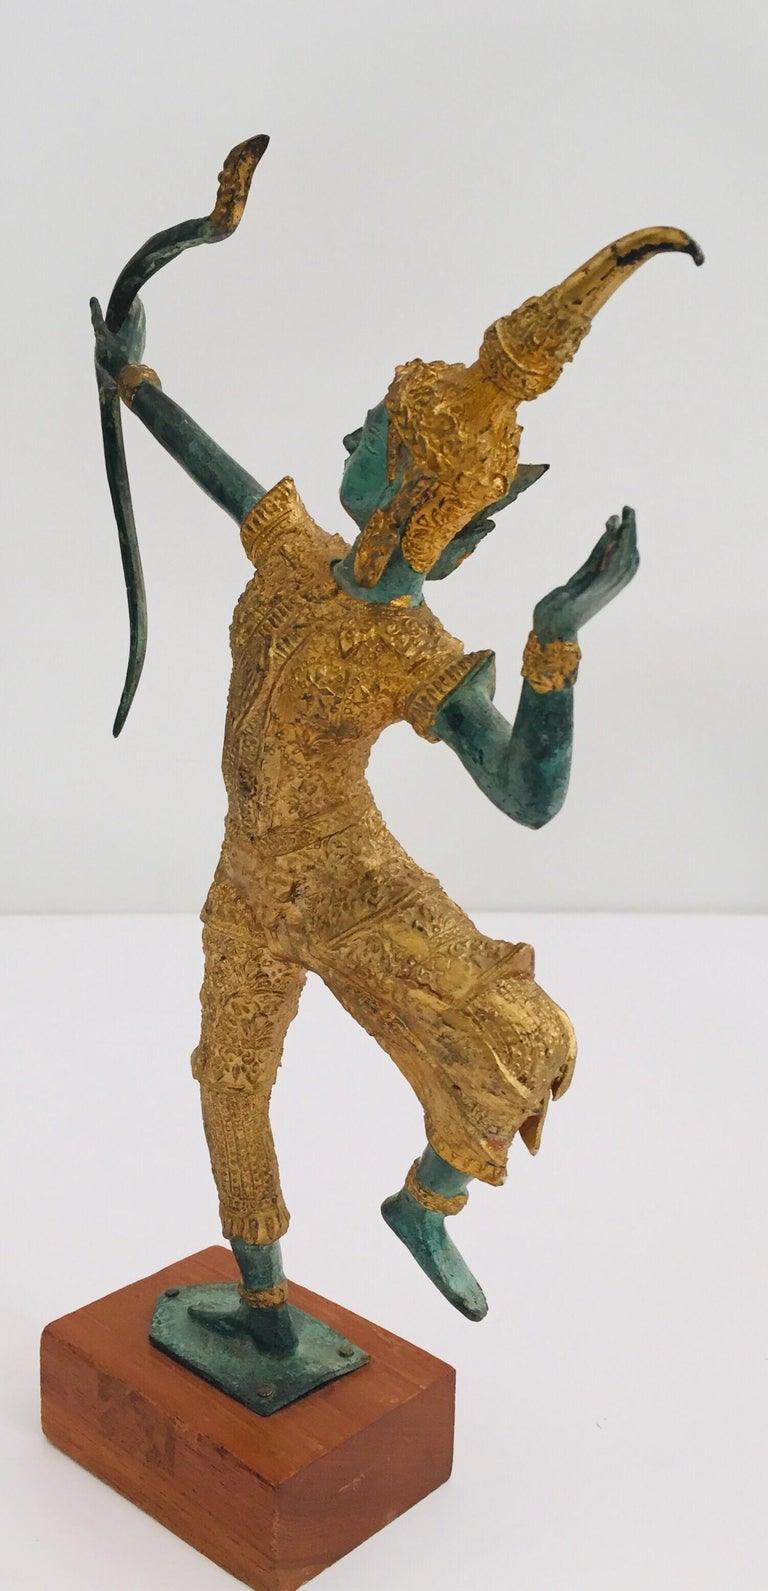 Vintage Bronze Gold and Green Thai Figurine of Prince Rama with a Bow For Sale 7